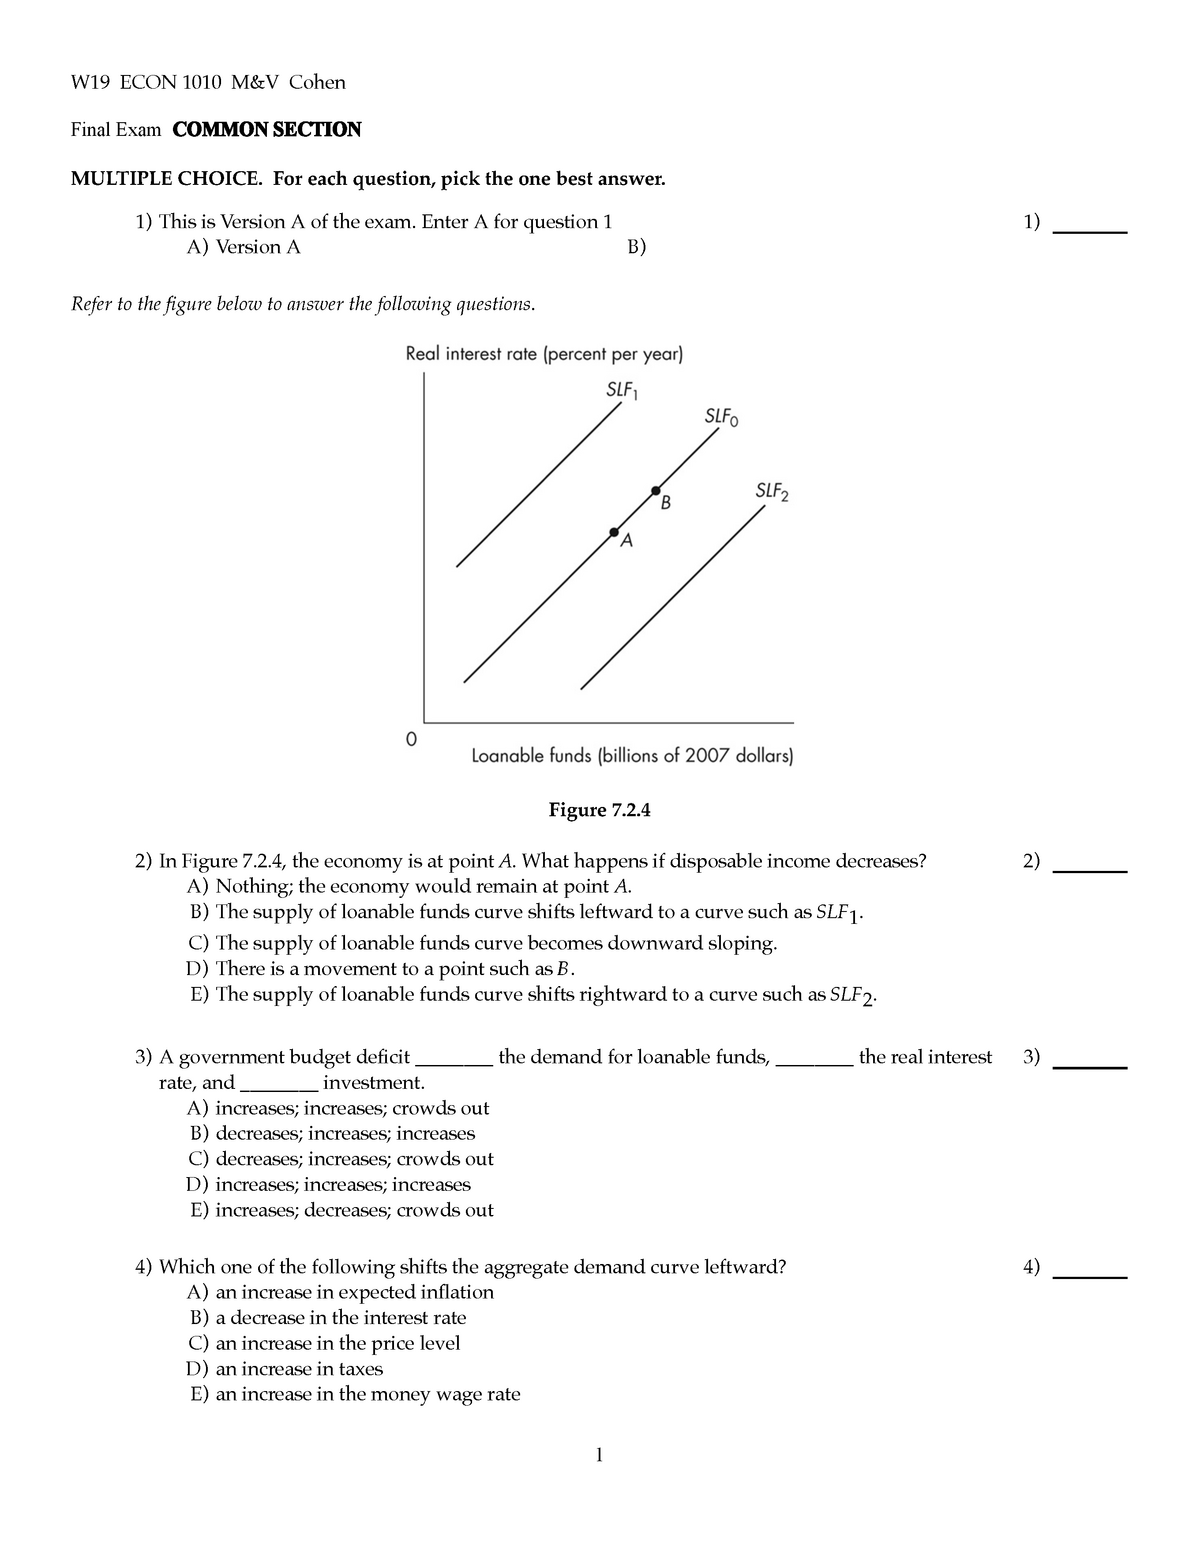 Exam 25 April 2019, questions and answers - StuDocu